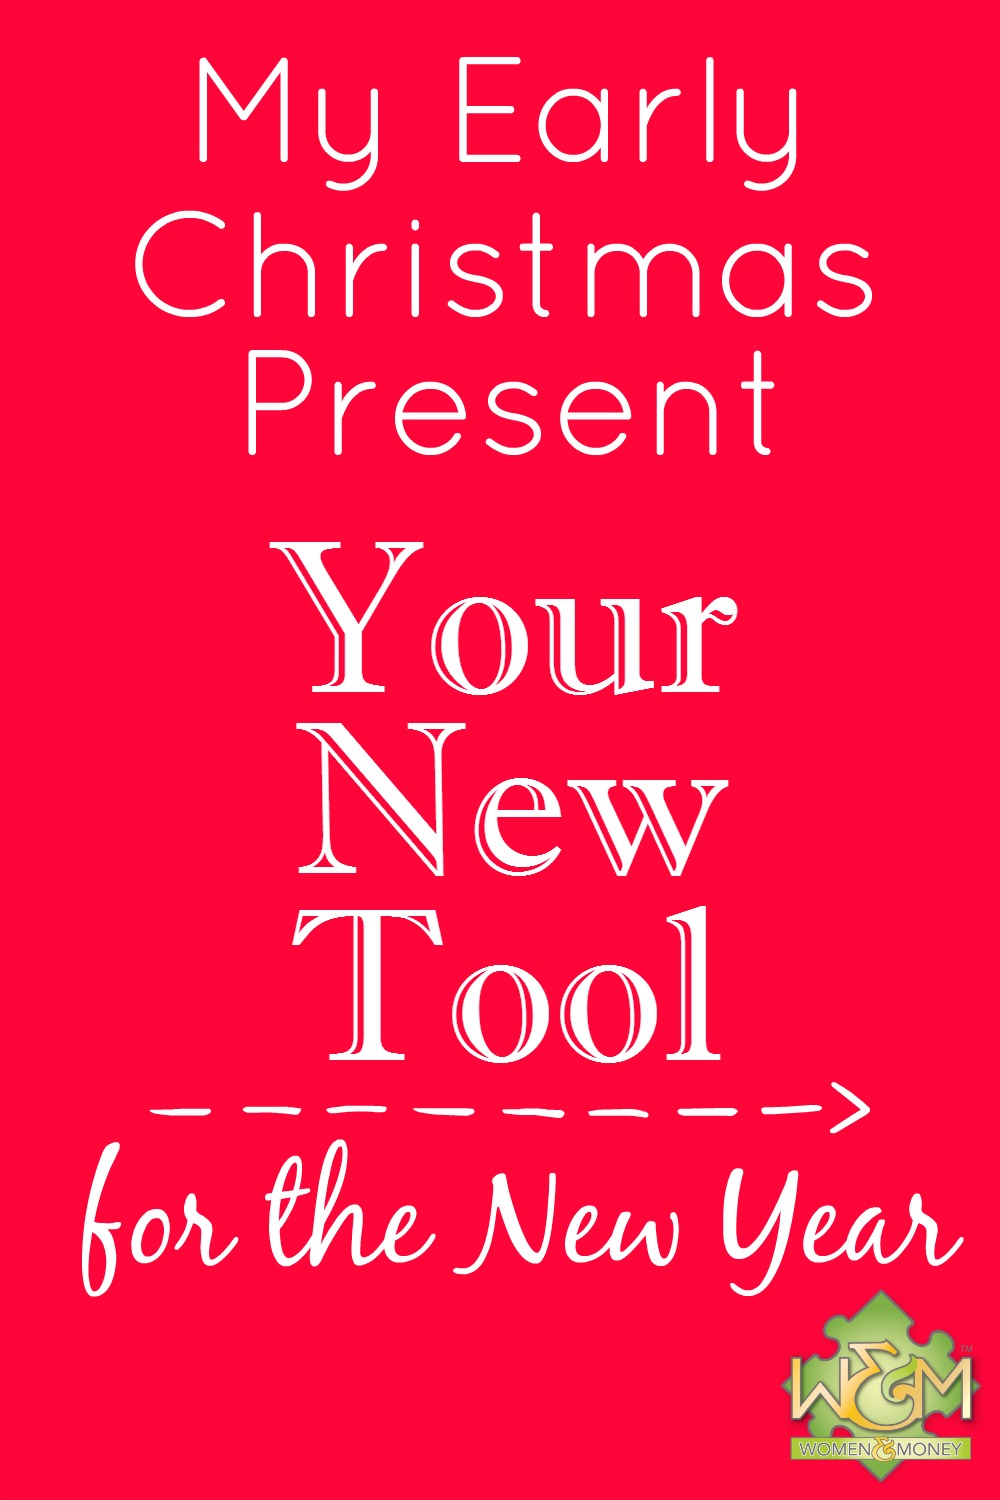 A New Tool for the New Year